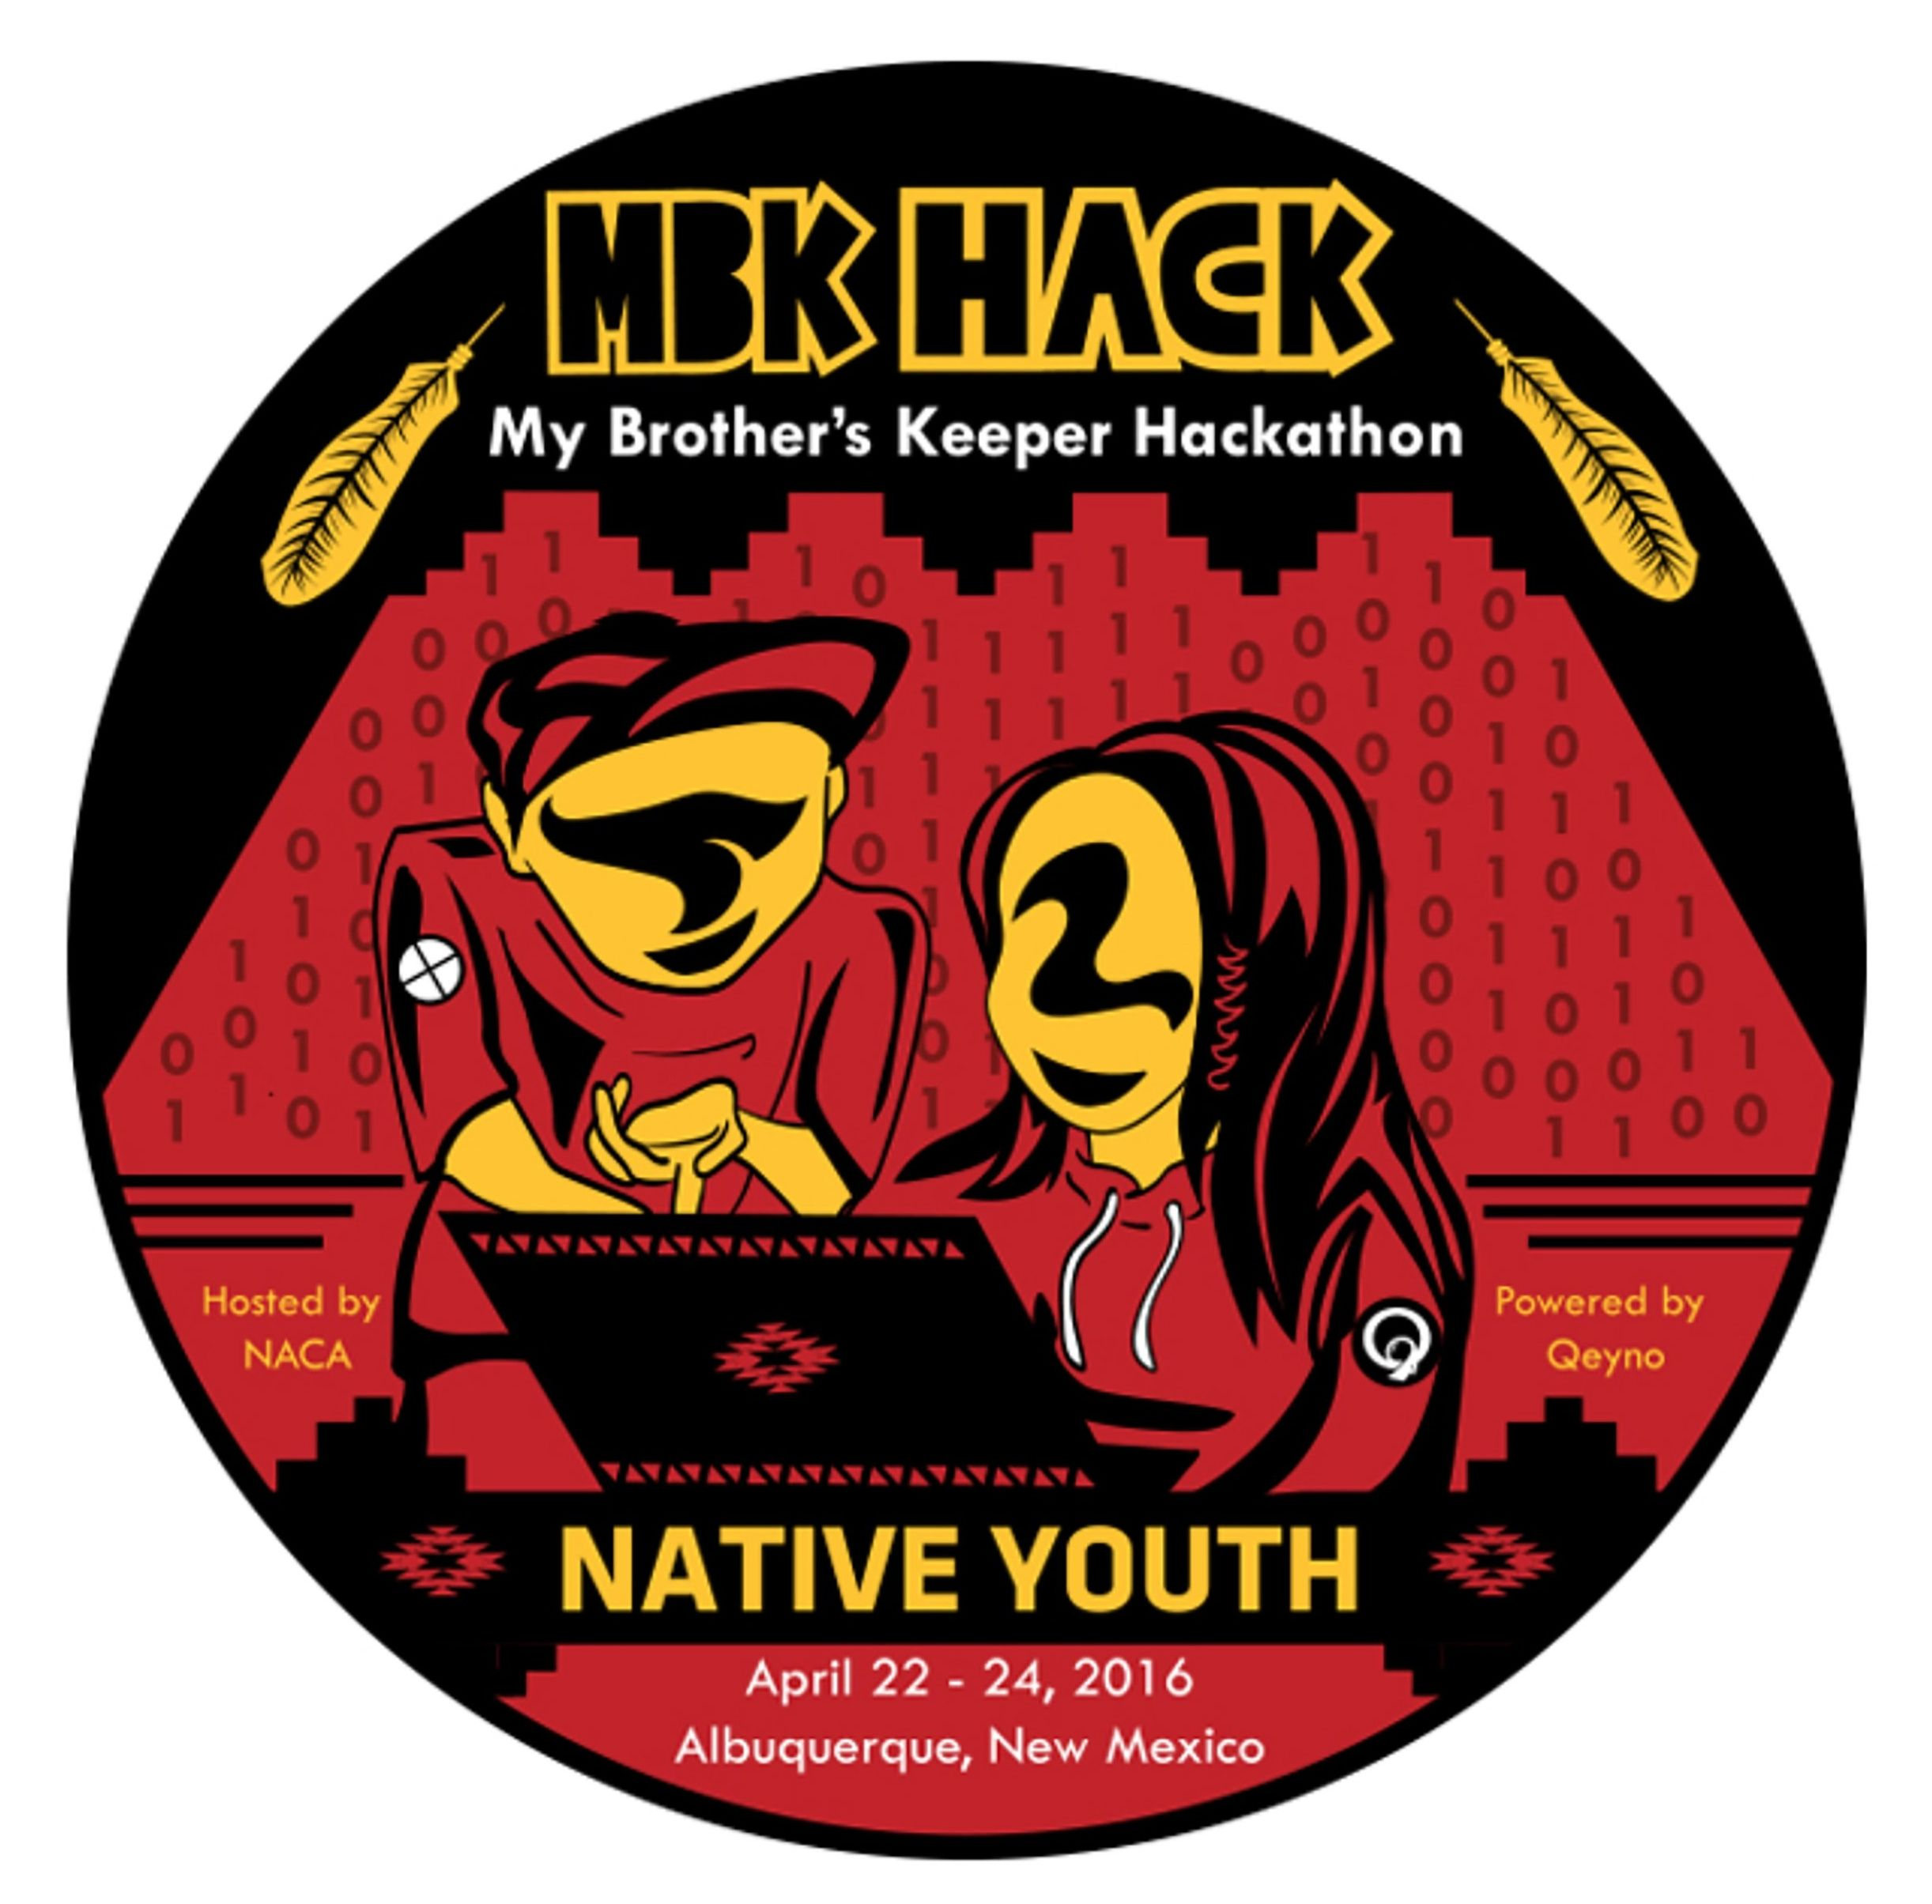 New Mexico Hackathon Provides Template For Native Stem